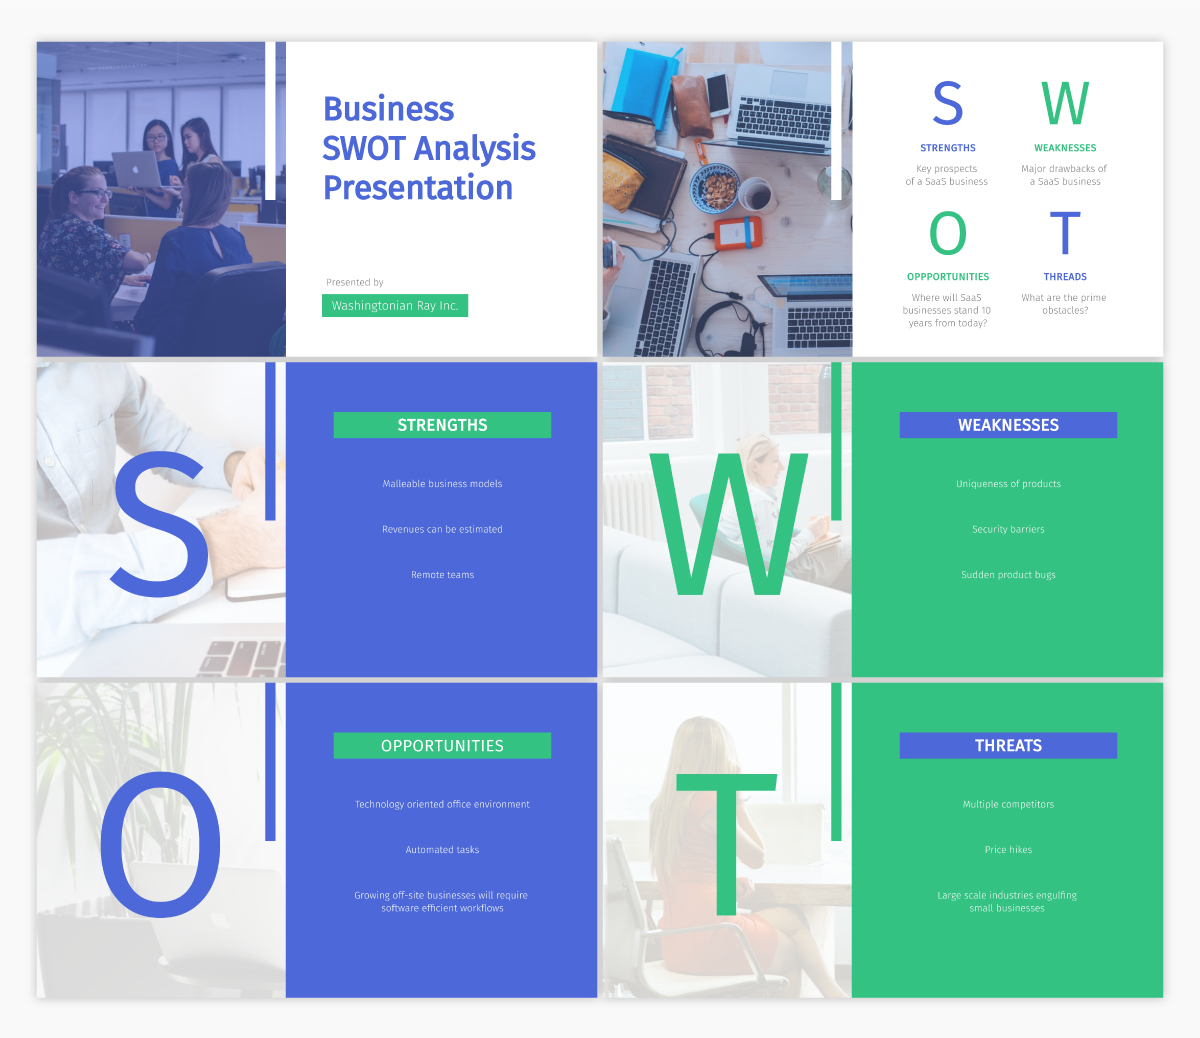 A SWOT analysis presentation template available in Visme.